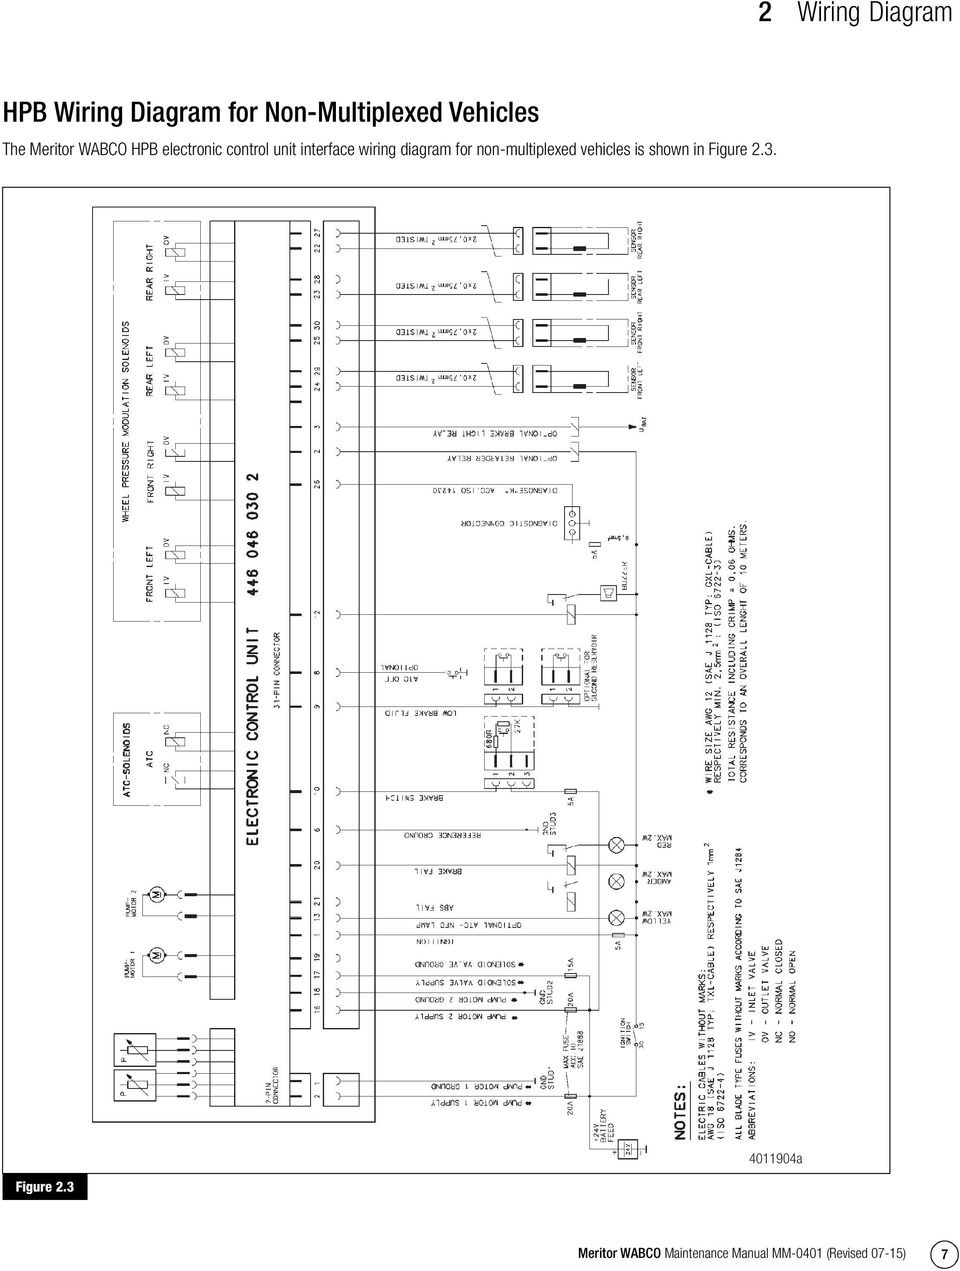 hight resolution of meritor wabco wiring diagram wiring diagram databasemeritor wabco wiring diagram wiring diagram meritor wabco wiring diagram